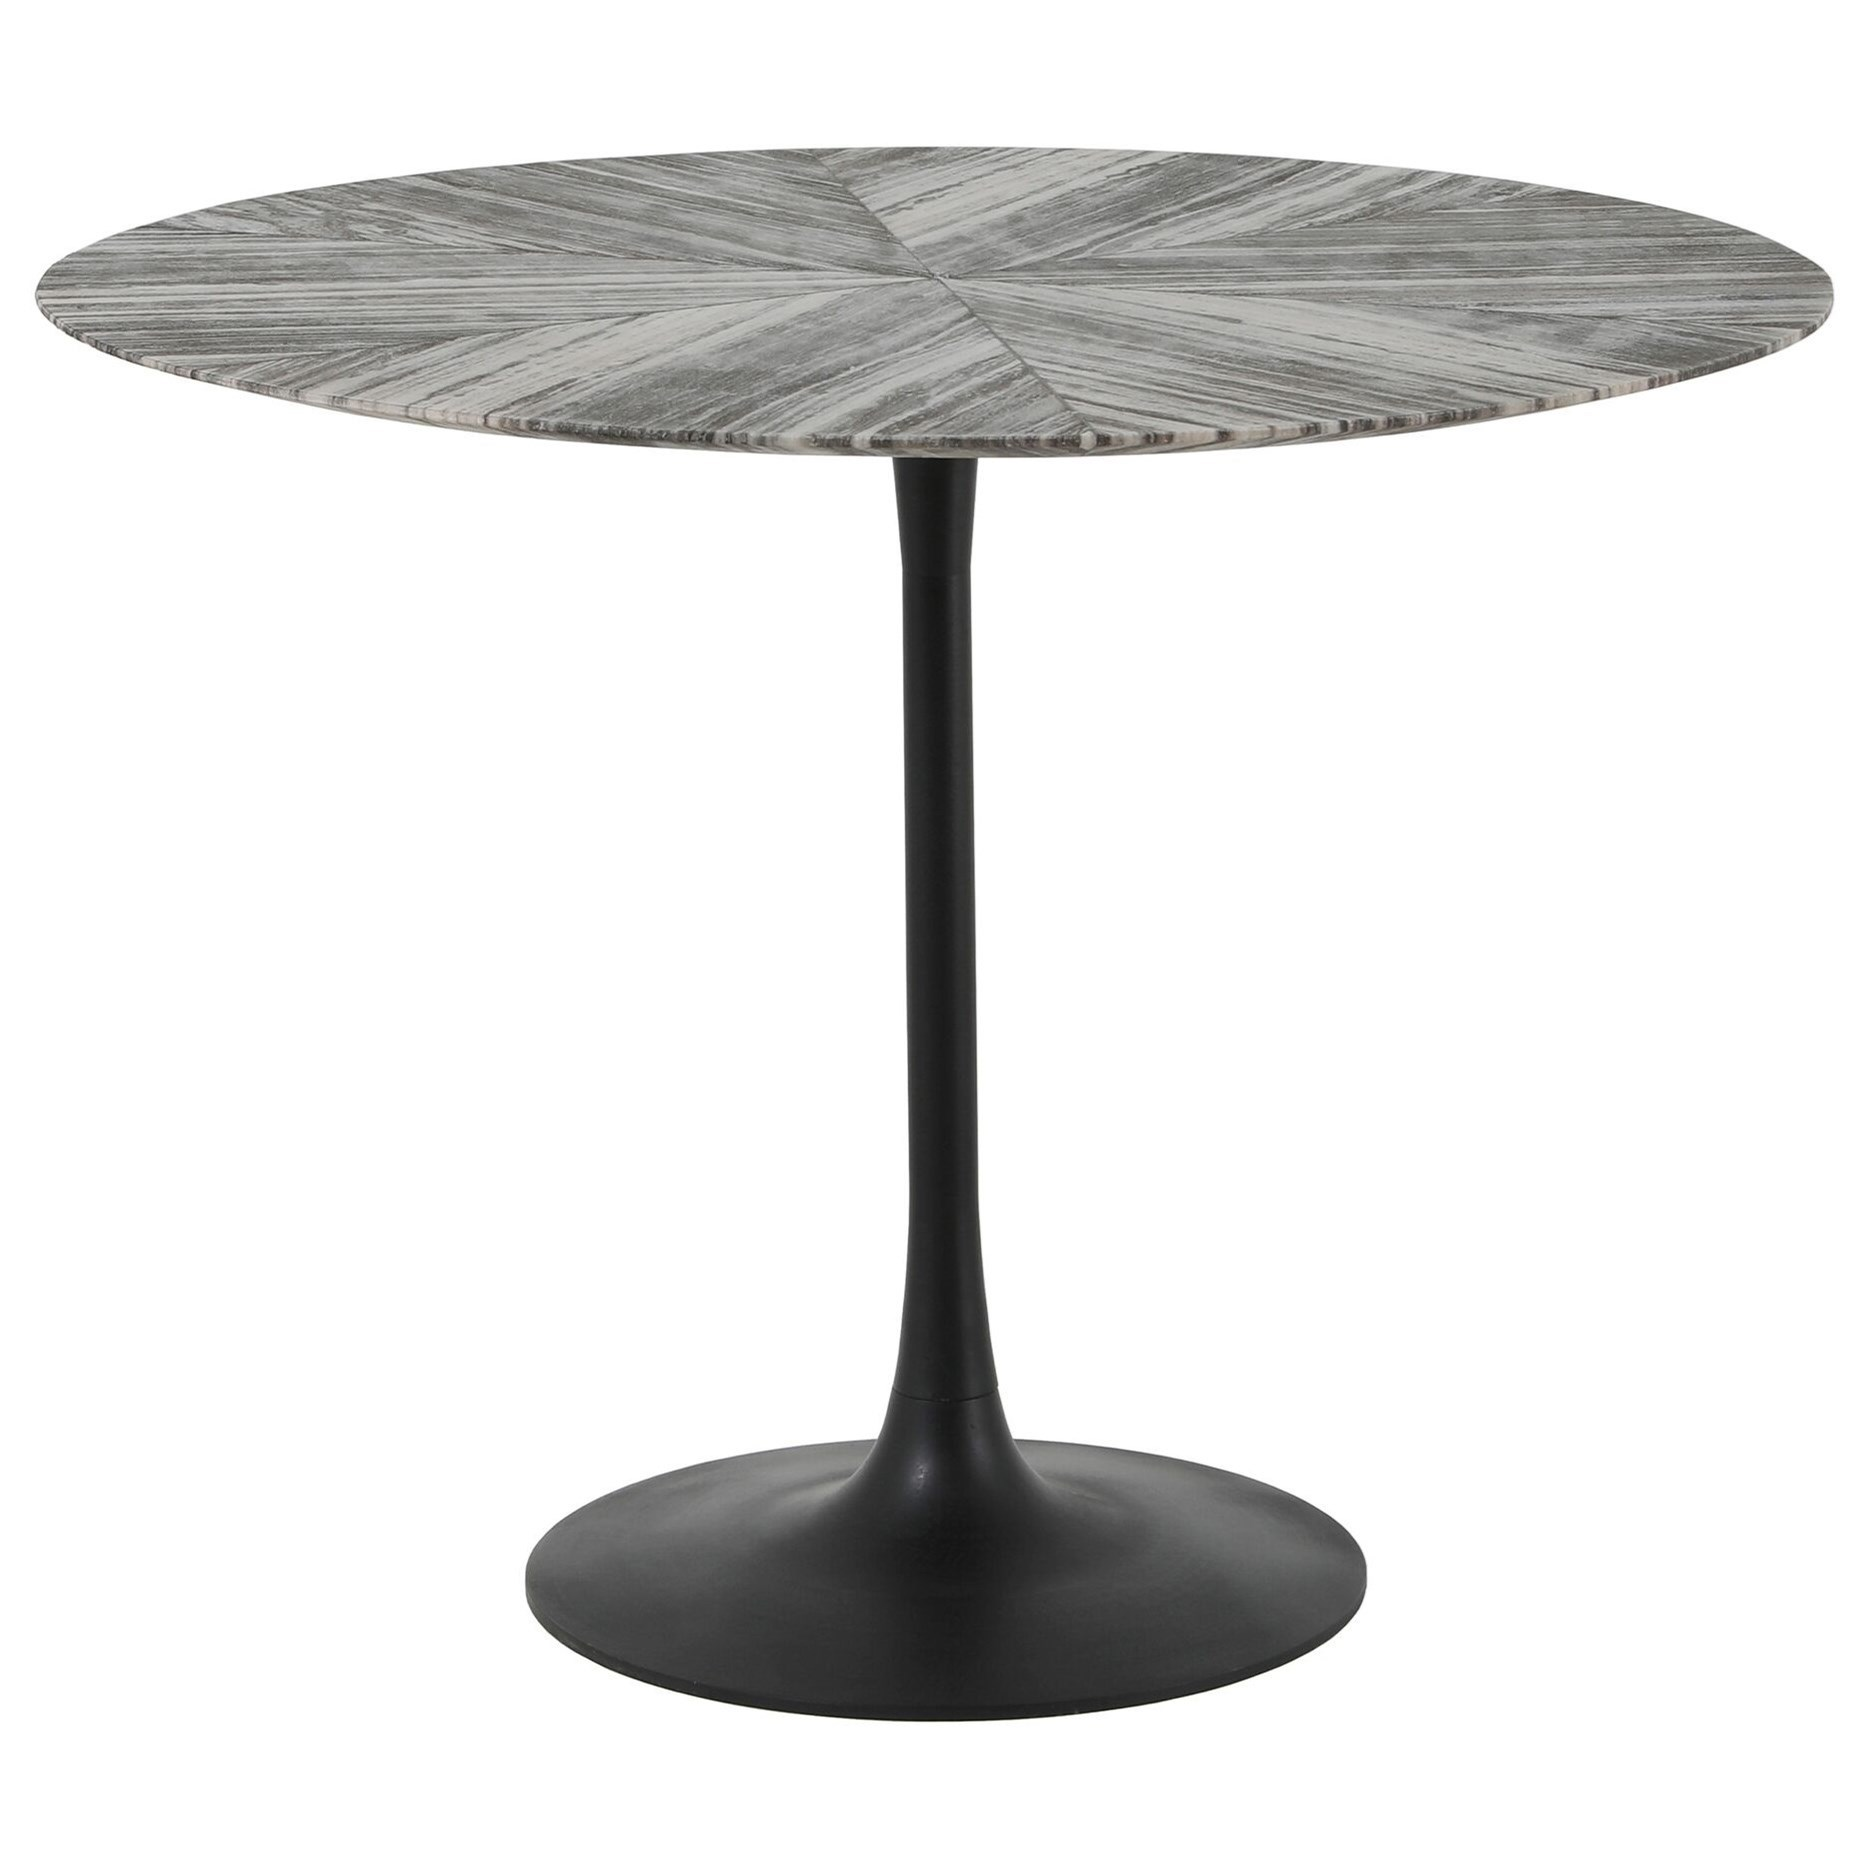 Nyles Marble Dining Table by Moe's Home Collection at Stoney Creek Furniture